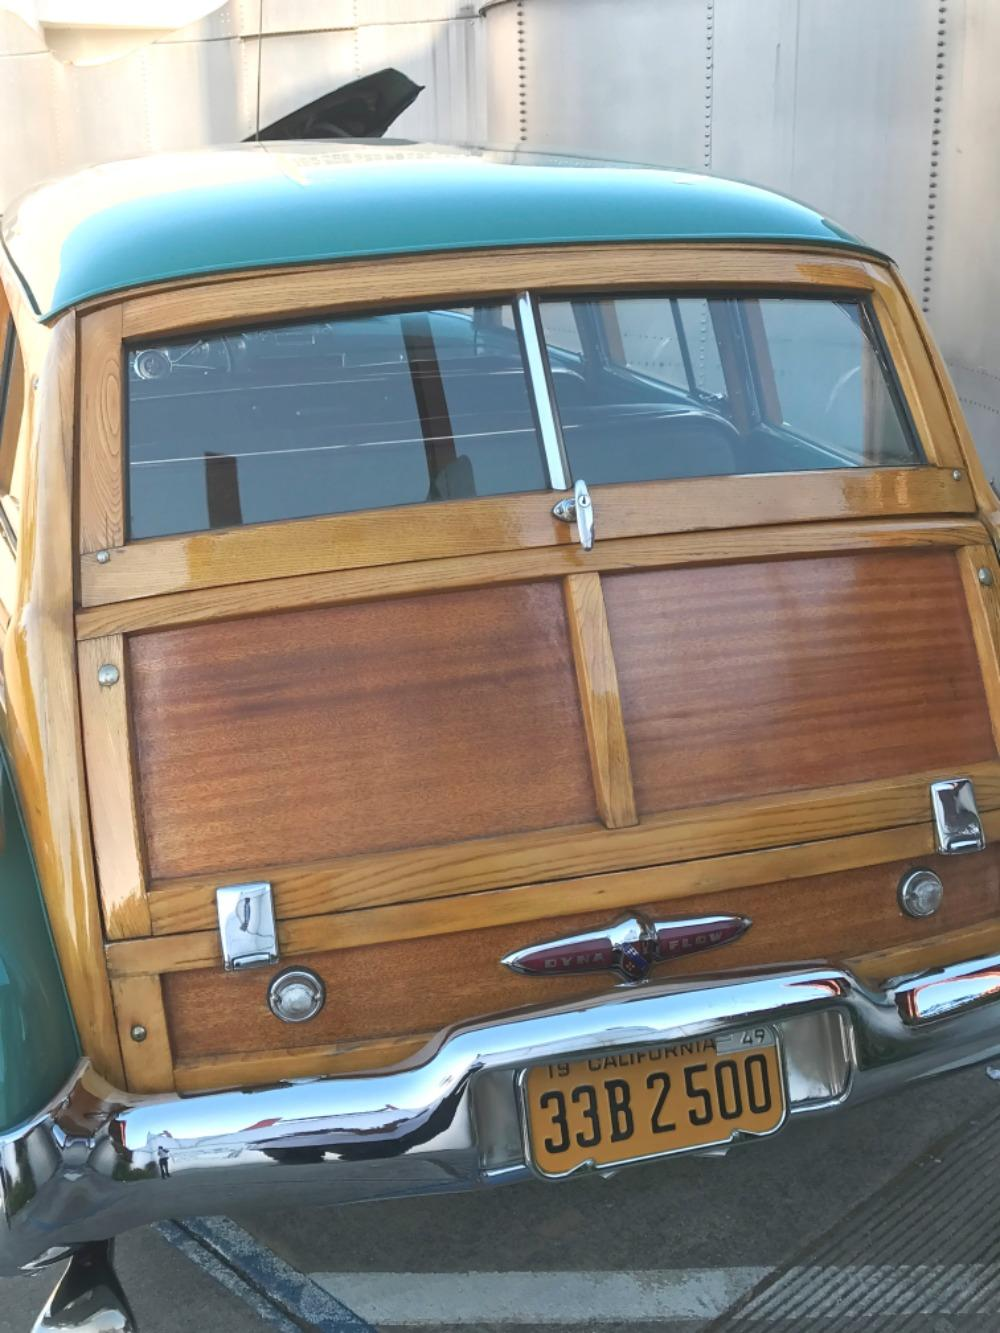 1949 Buick Series 50 -RARE WOODY WAGON- ONLY 653 BUILT-Super Estate Wagon Stock # 849CAMK for sale near Mundelein, IL | IL Buick Dealer #55